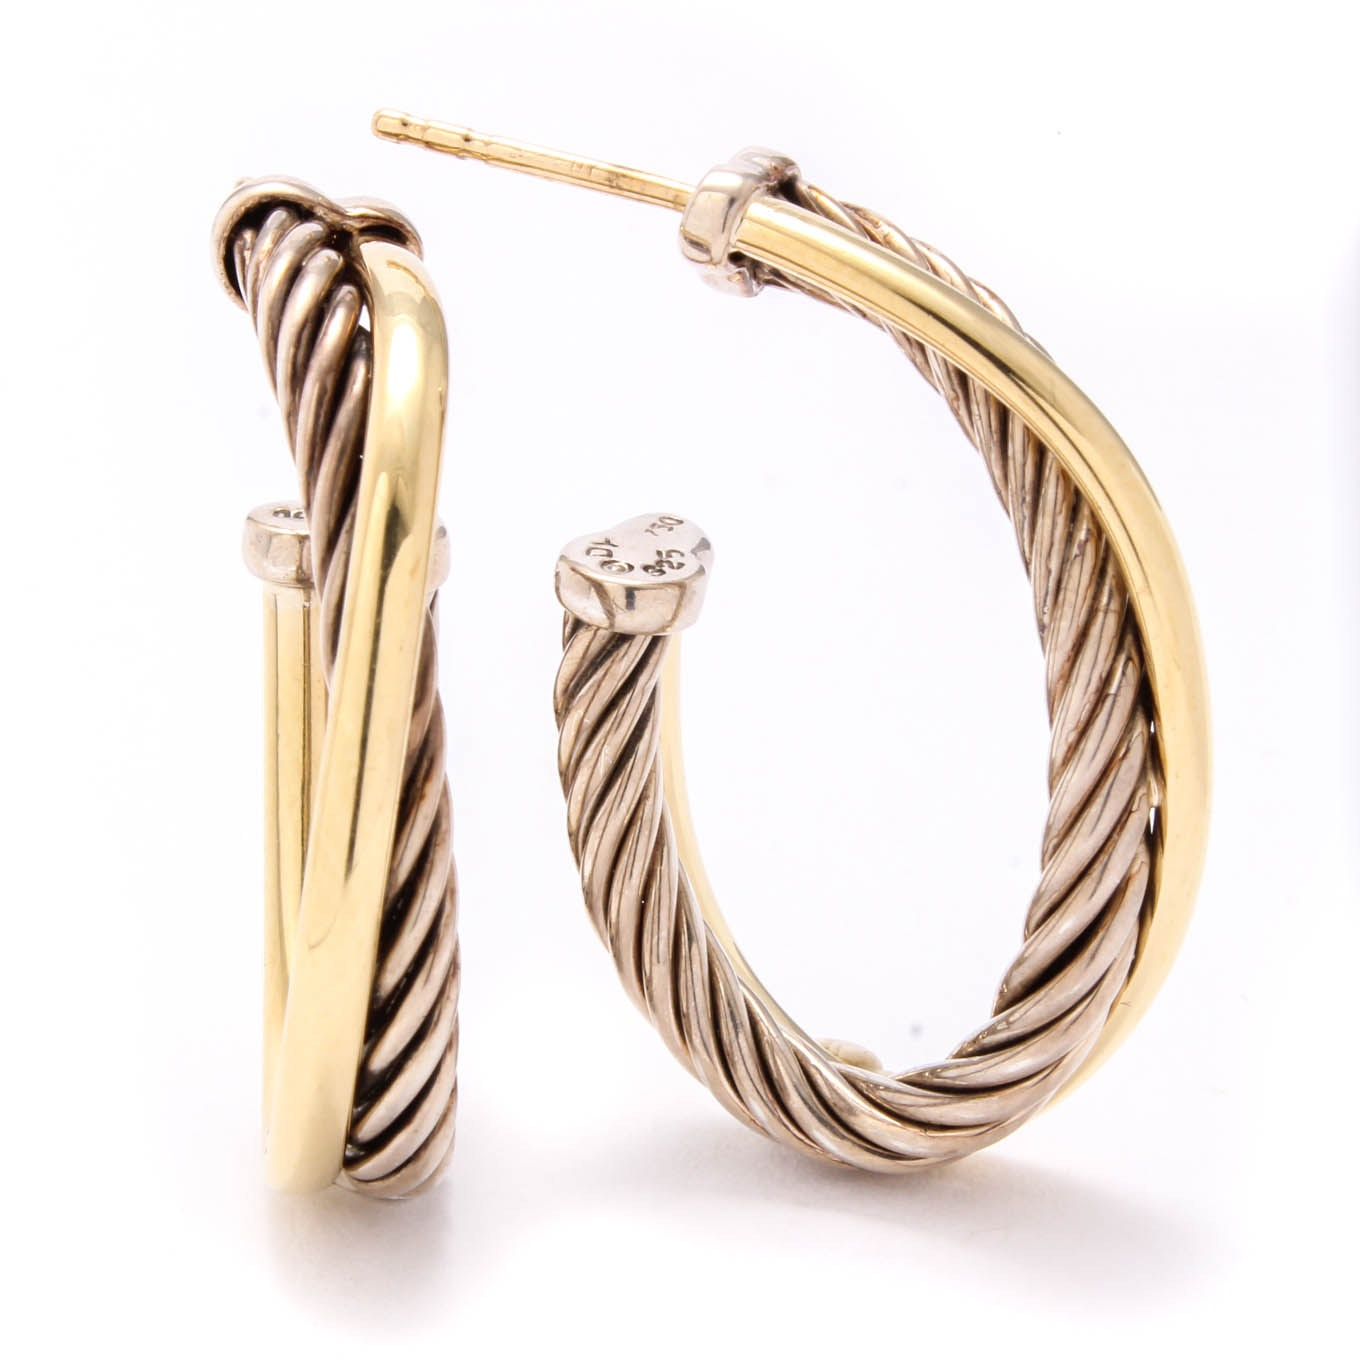 David Yurman Sterling Silver and 18K Yellow Gold Hoop Earrings